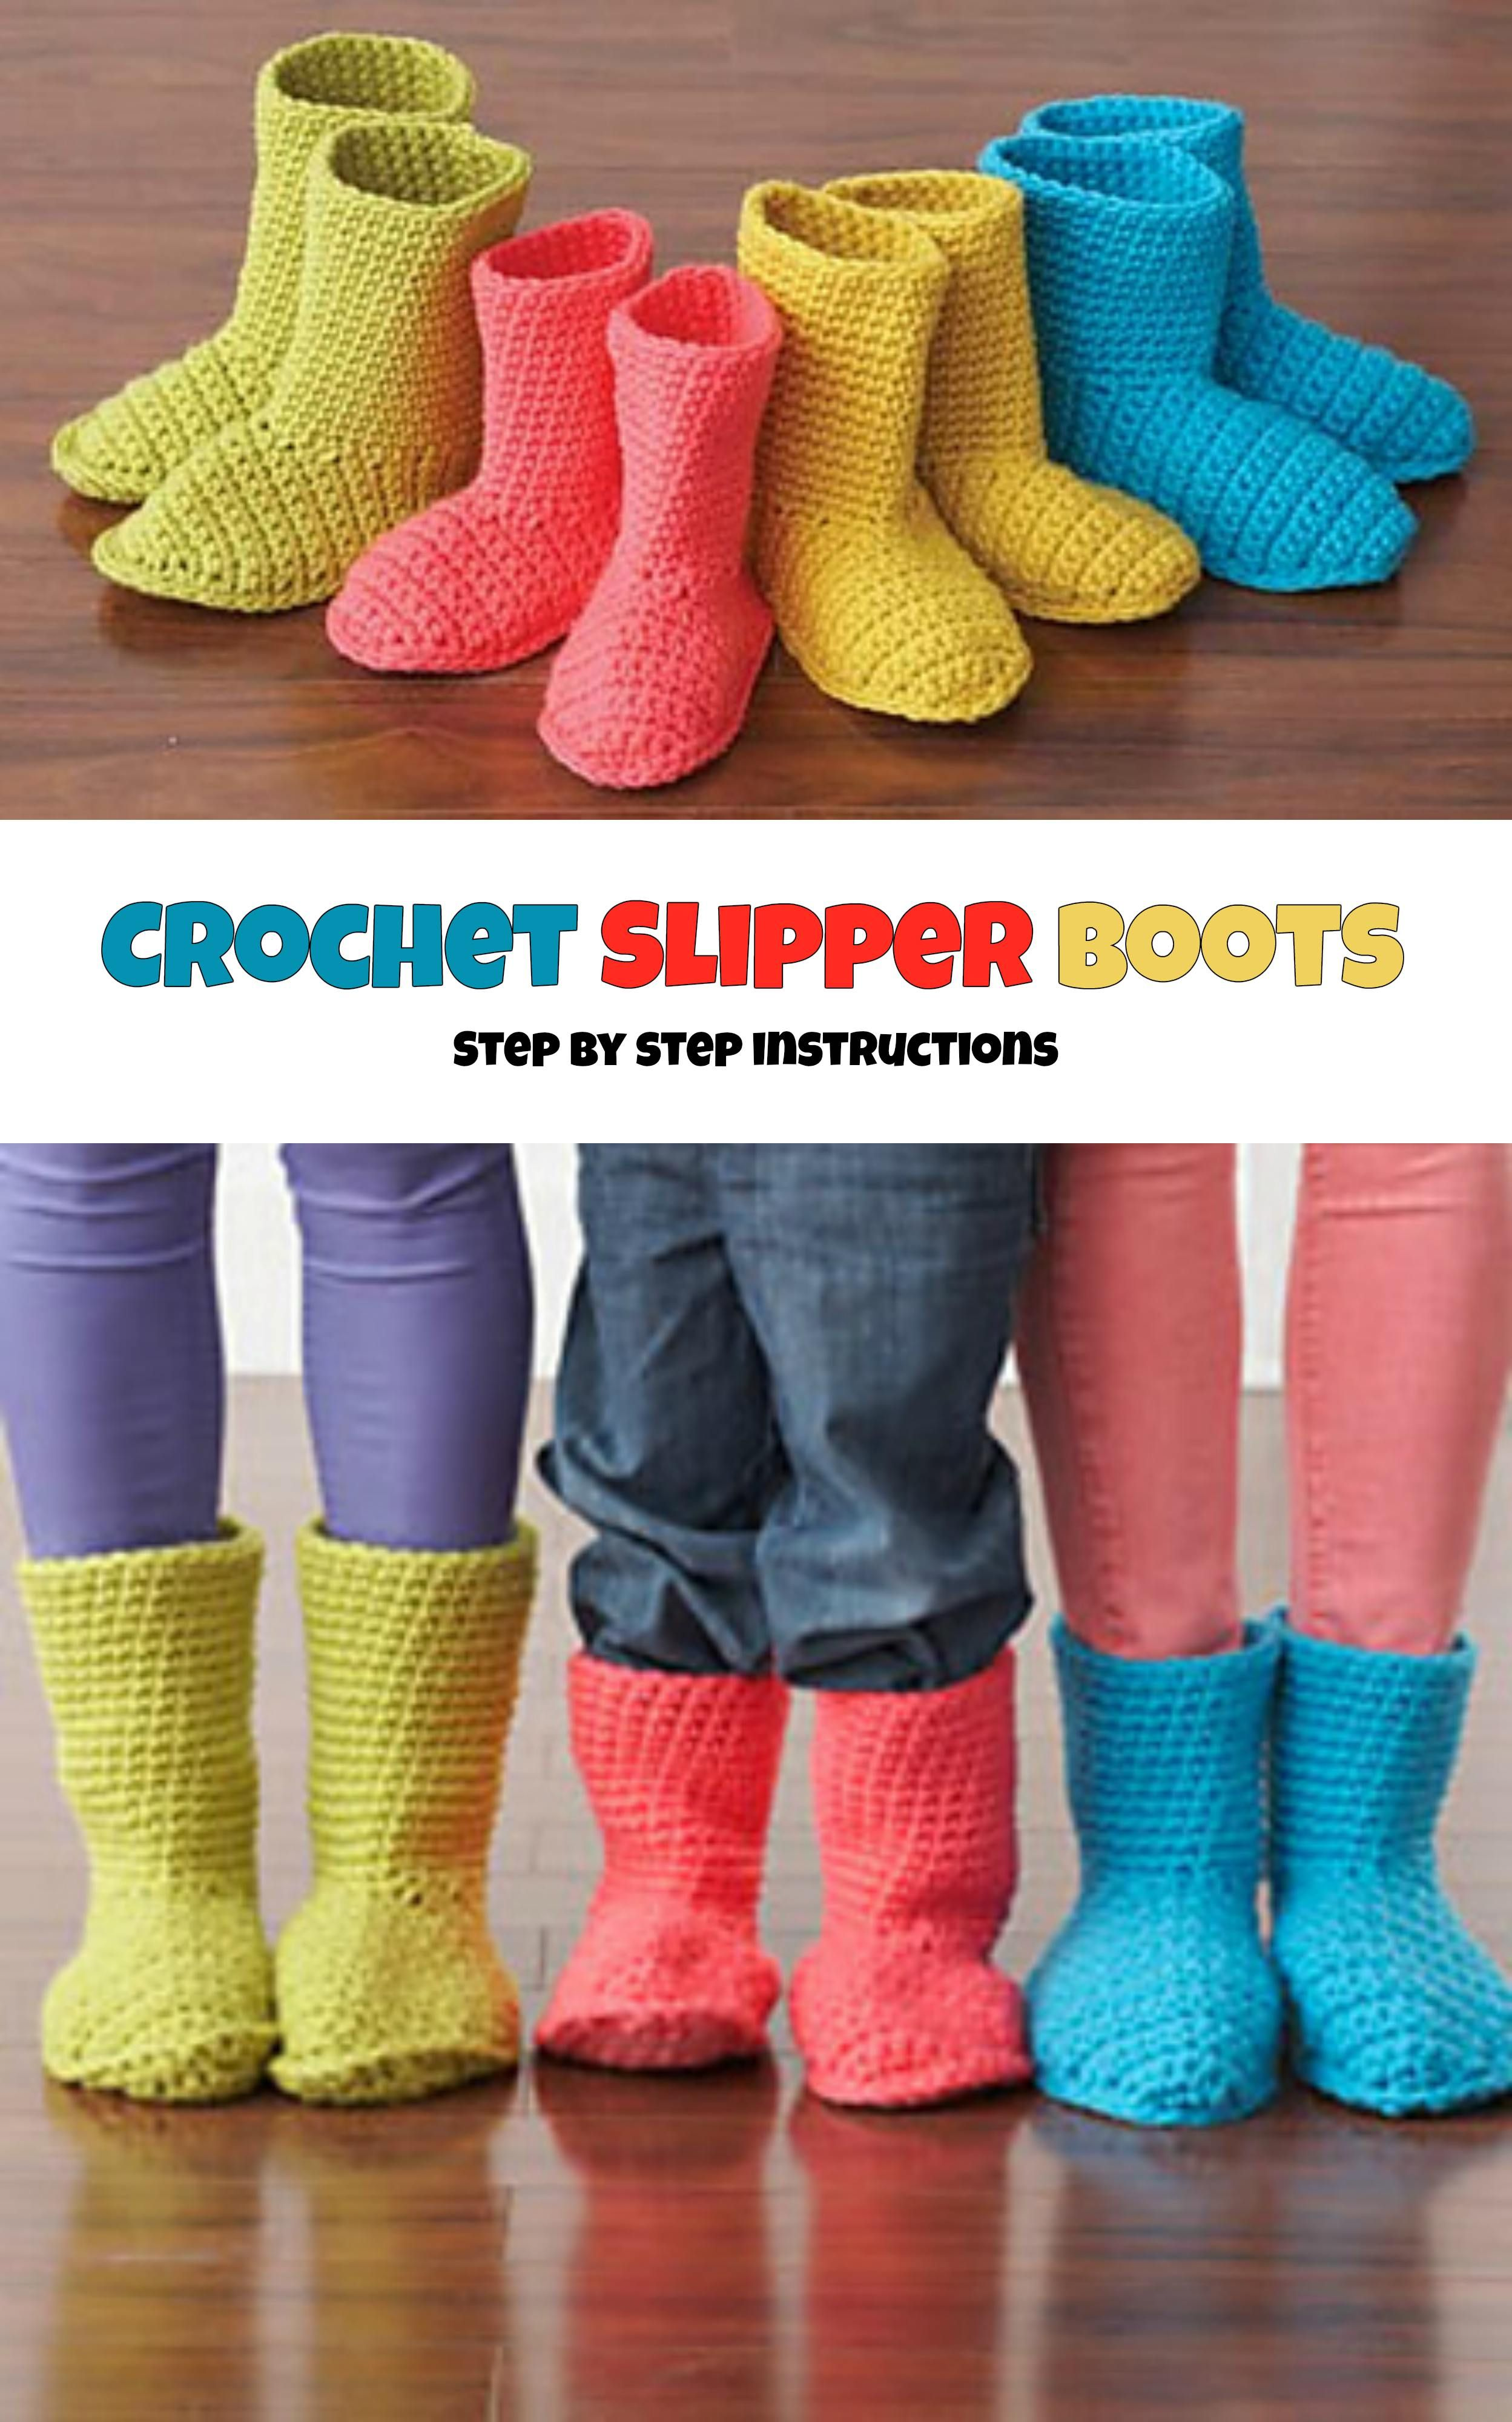 Crochet Slippers Boots | Knitting clothes | Pinterest | Zapatillas ...